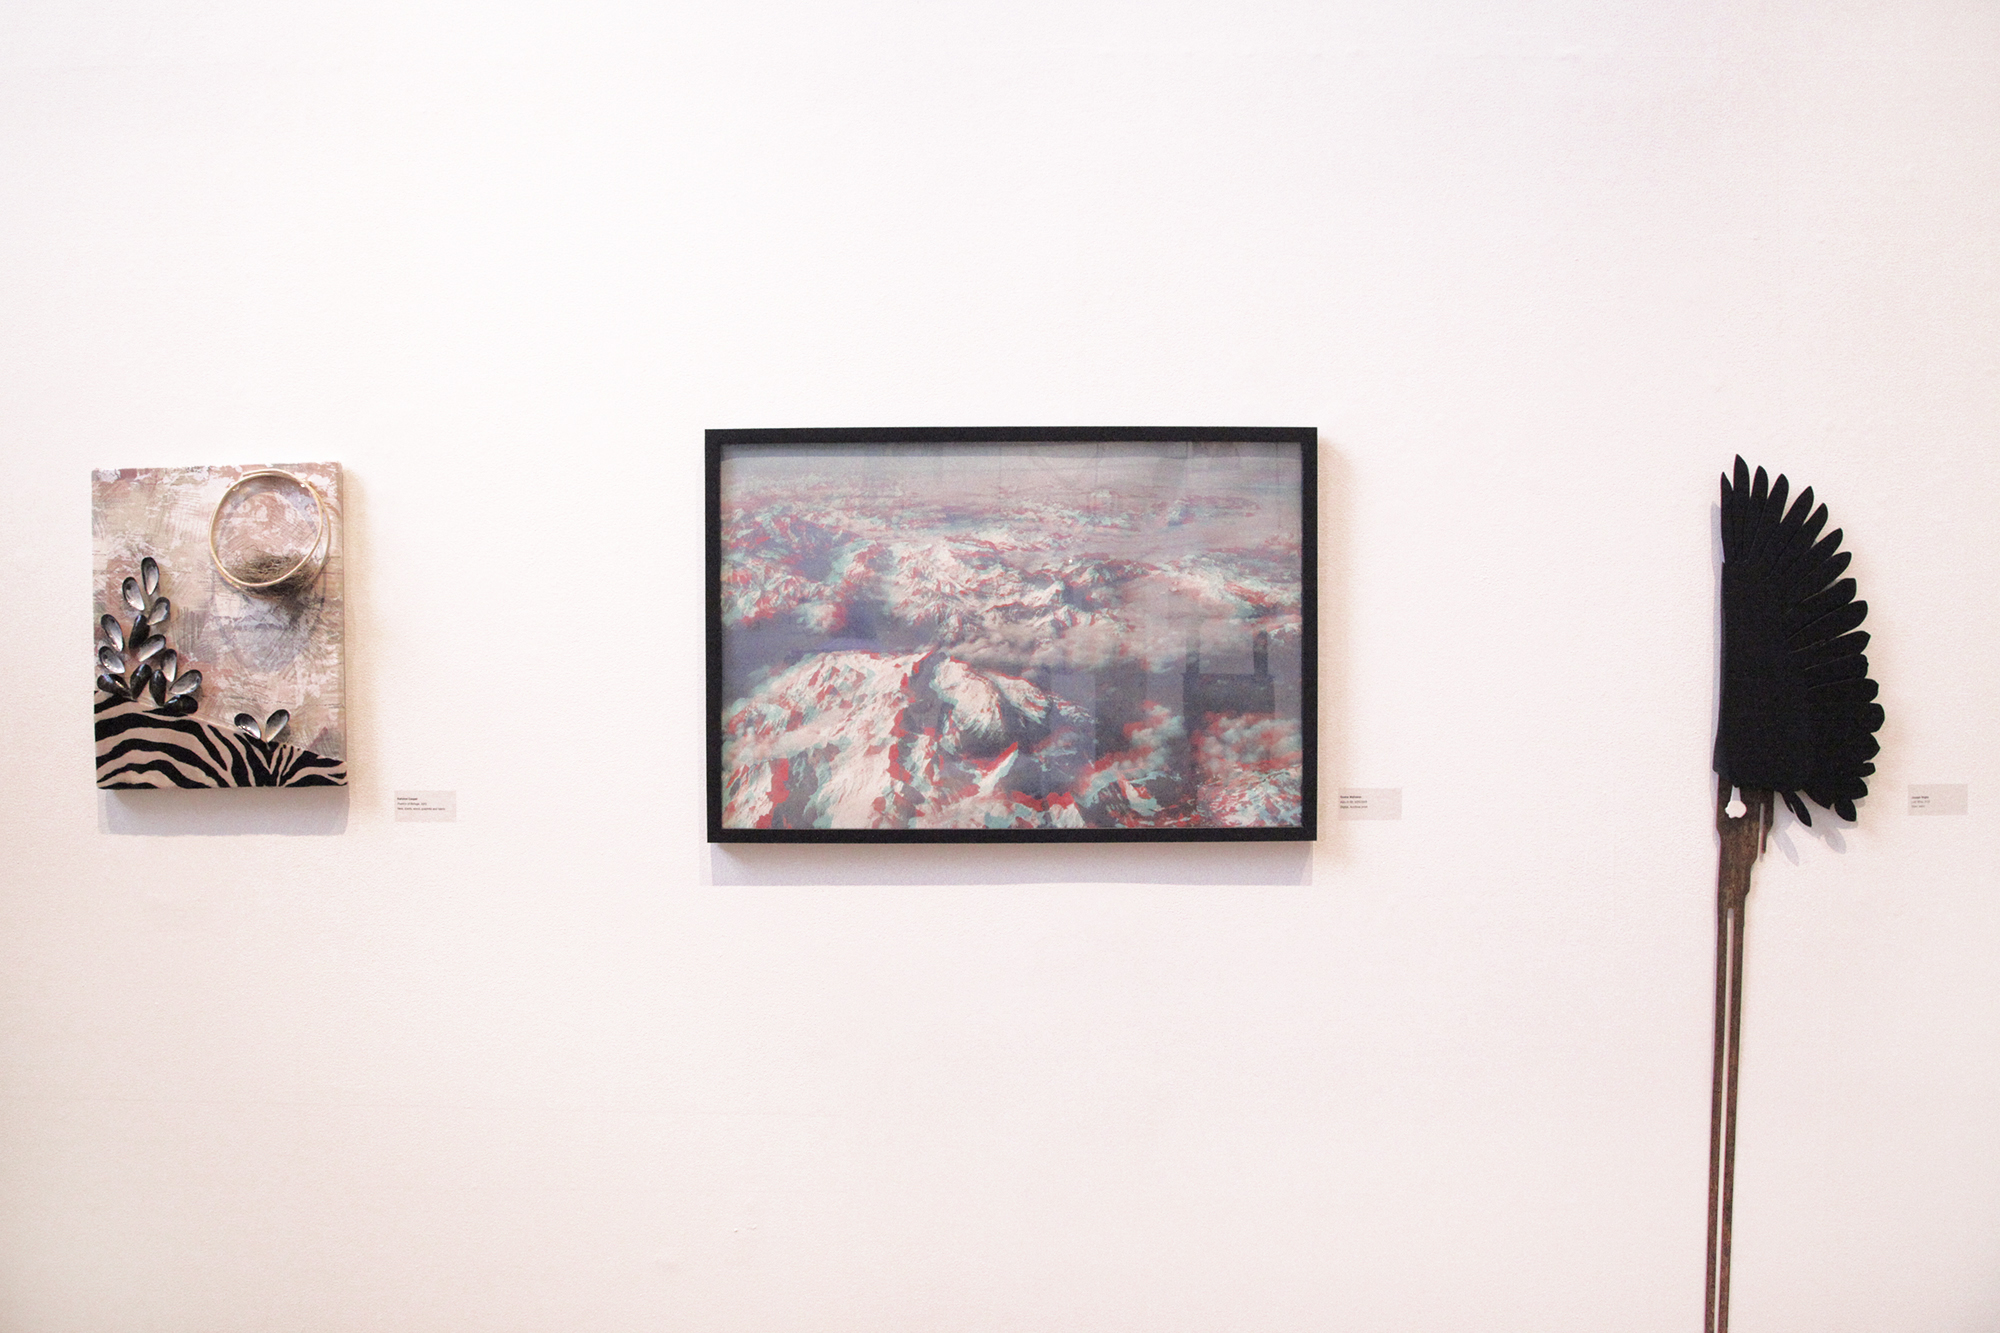 Geena Matuson's (@geenamatuson) framed work 'Alps in 3D' in MassArt Graduating Senior Exhibition, 2013.